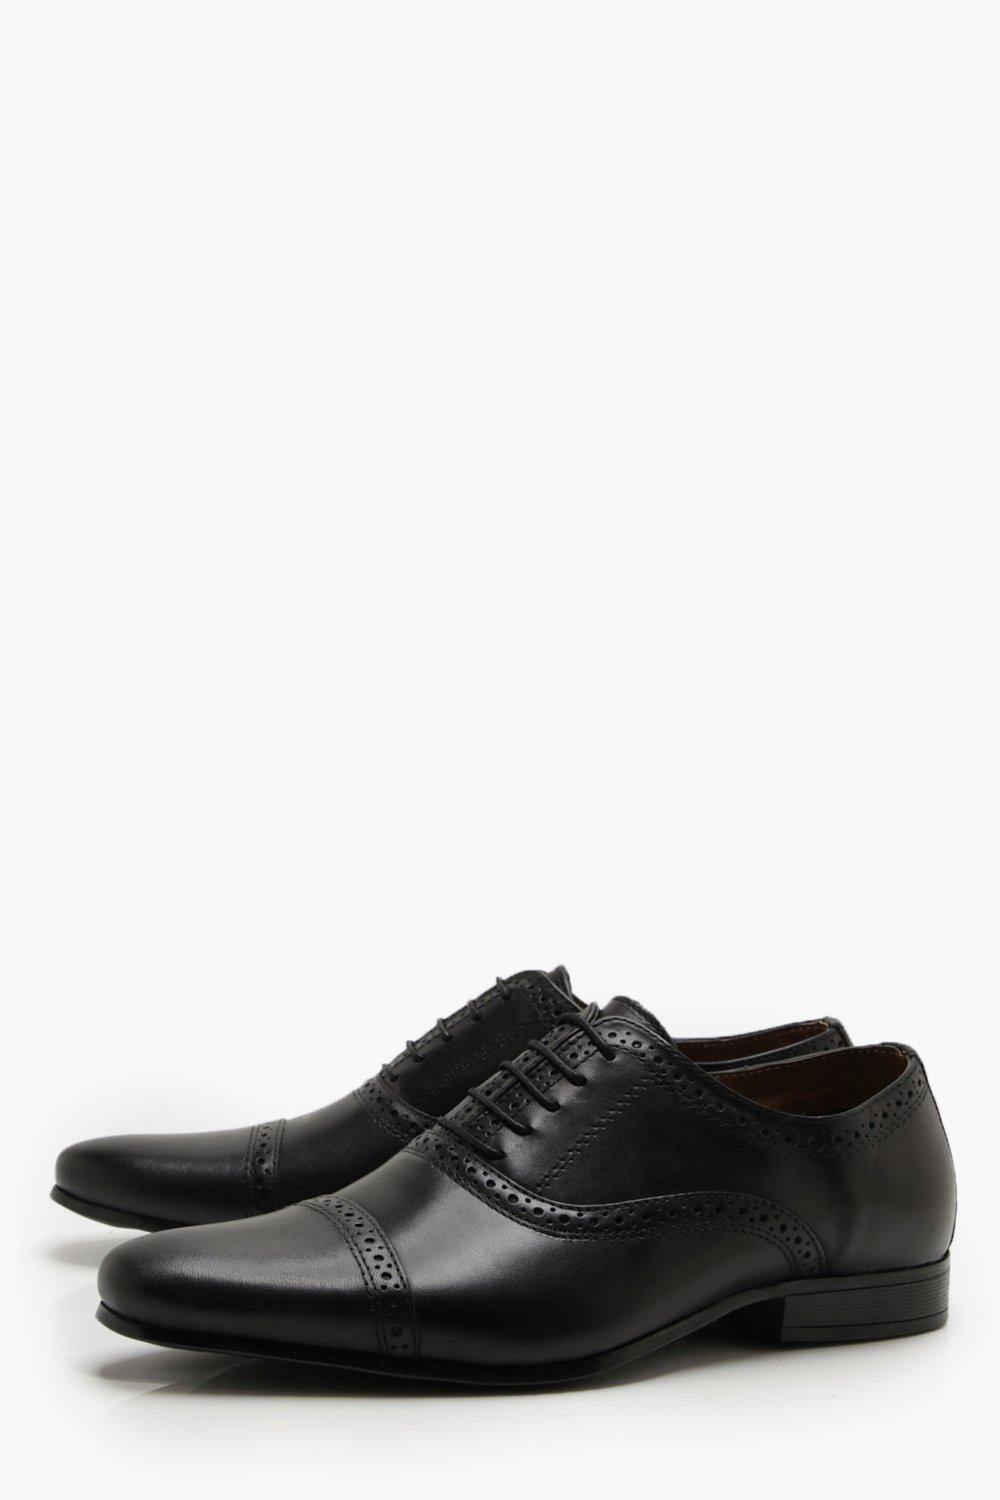 boohooMAN black Real Leather Punched Brogue